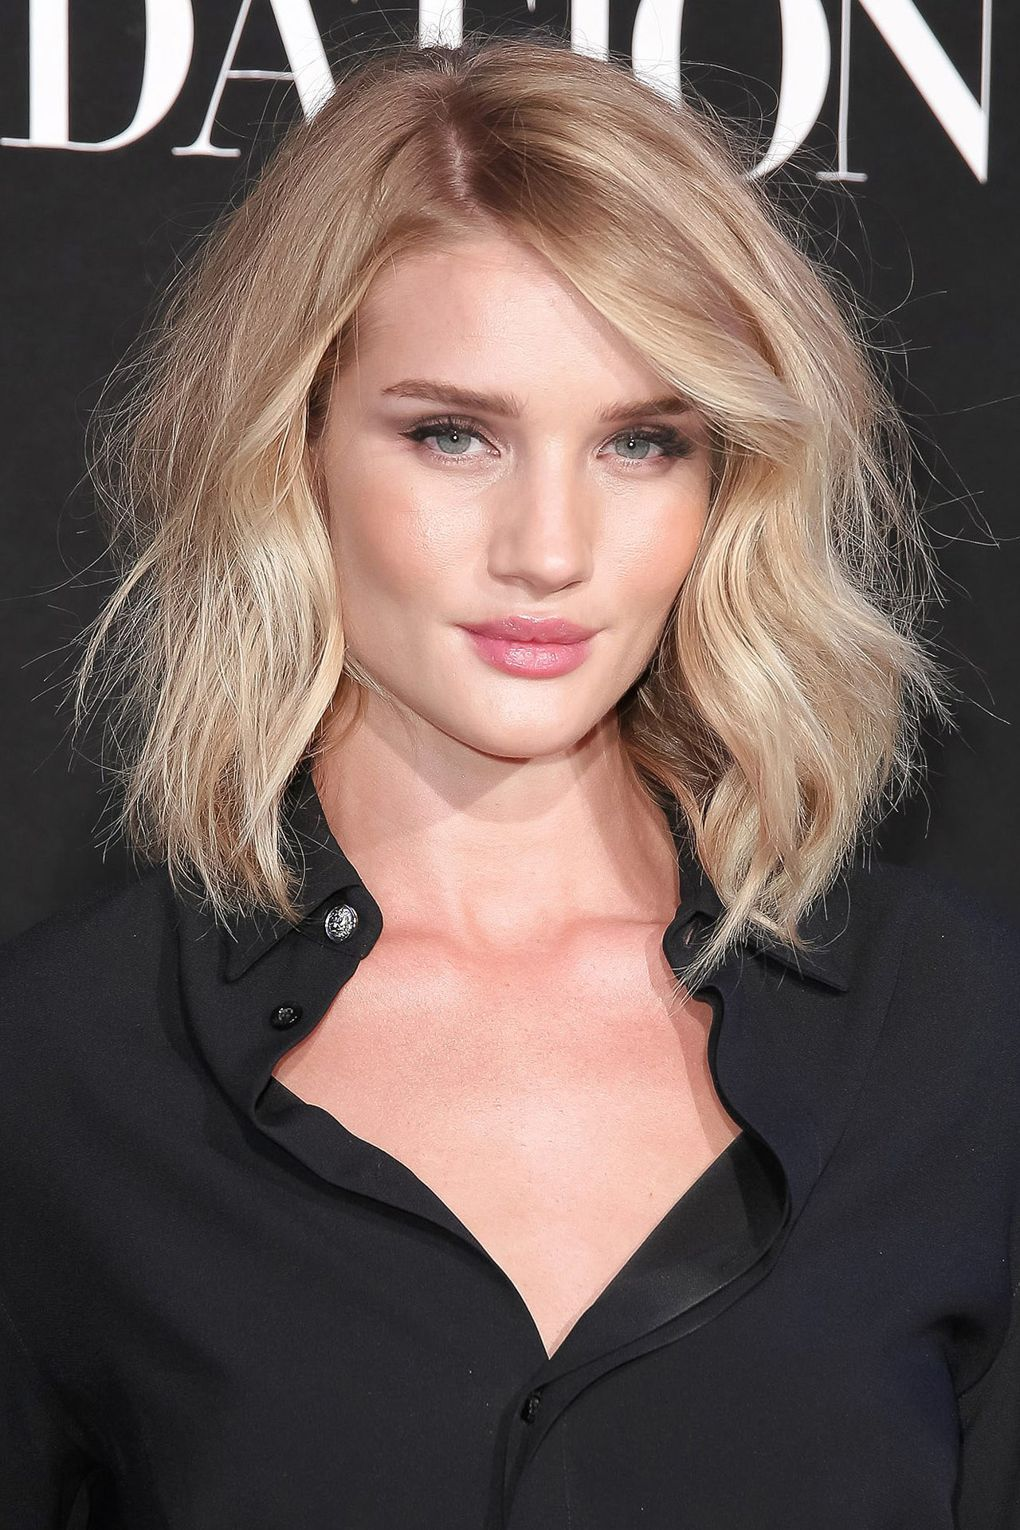 Bob hairstyles styles to choose from bob hairstyle bobs and